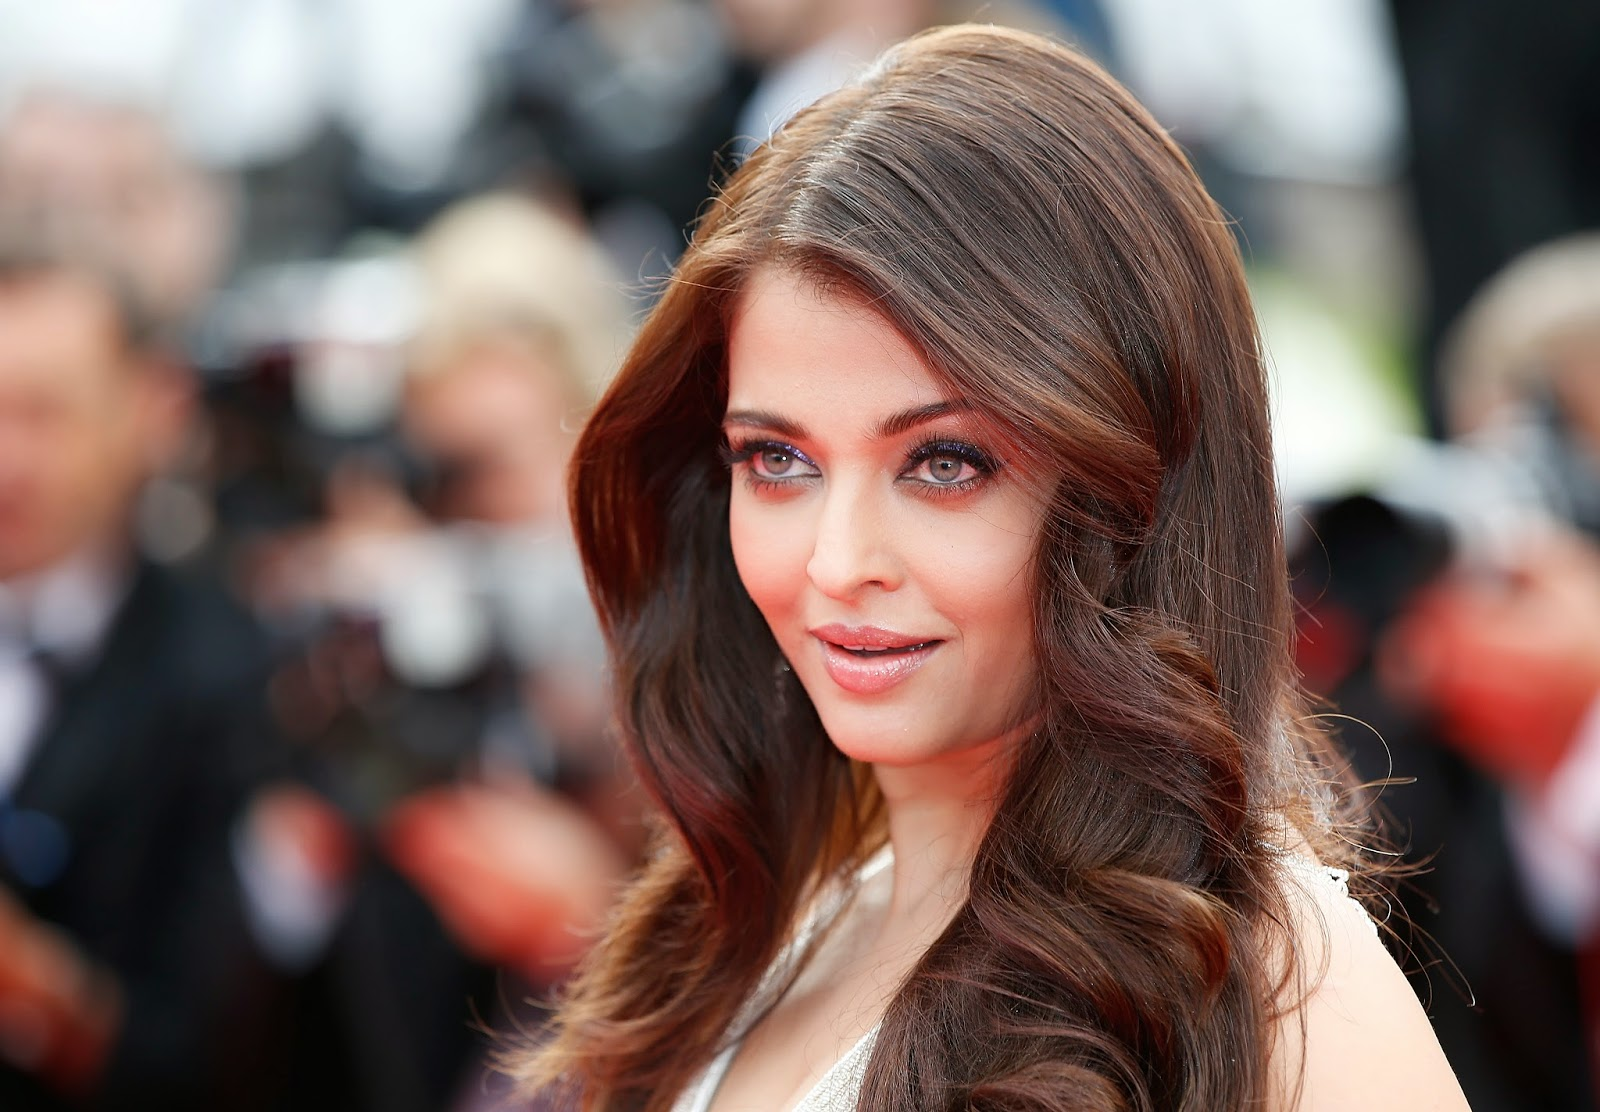 Aishwarya Rai, Aishwarya Rai Photo, Bollywood actress, Cannes, Cannes Festival, Cannes Film Festival, Deux Jours Une Nuit, Entertainment, Film, France, Miss World, Showbiz,